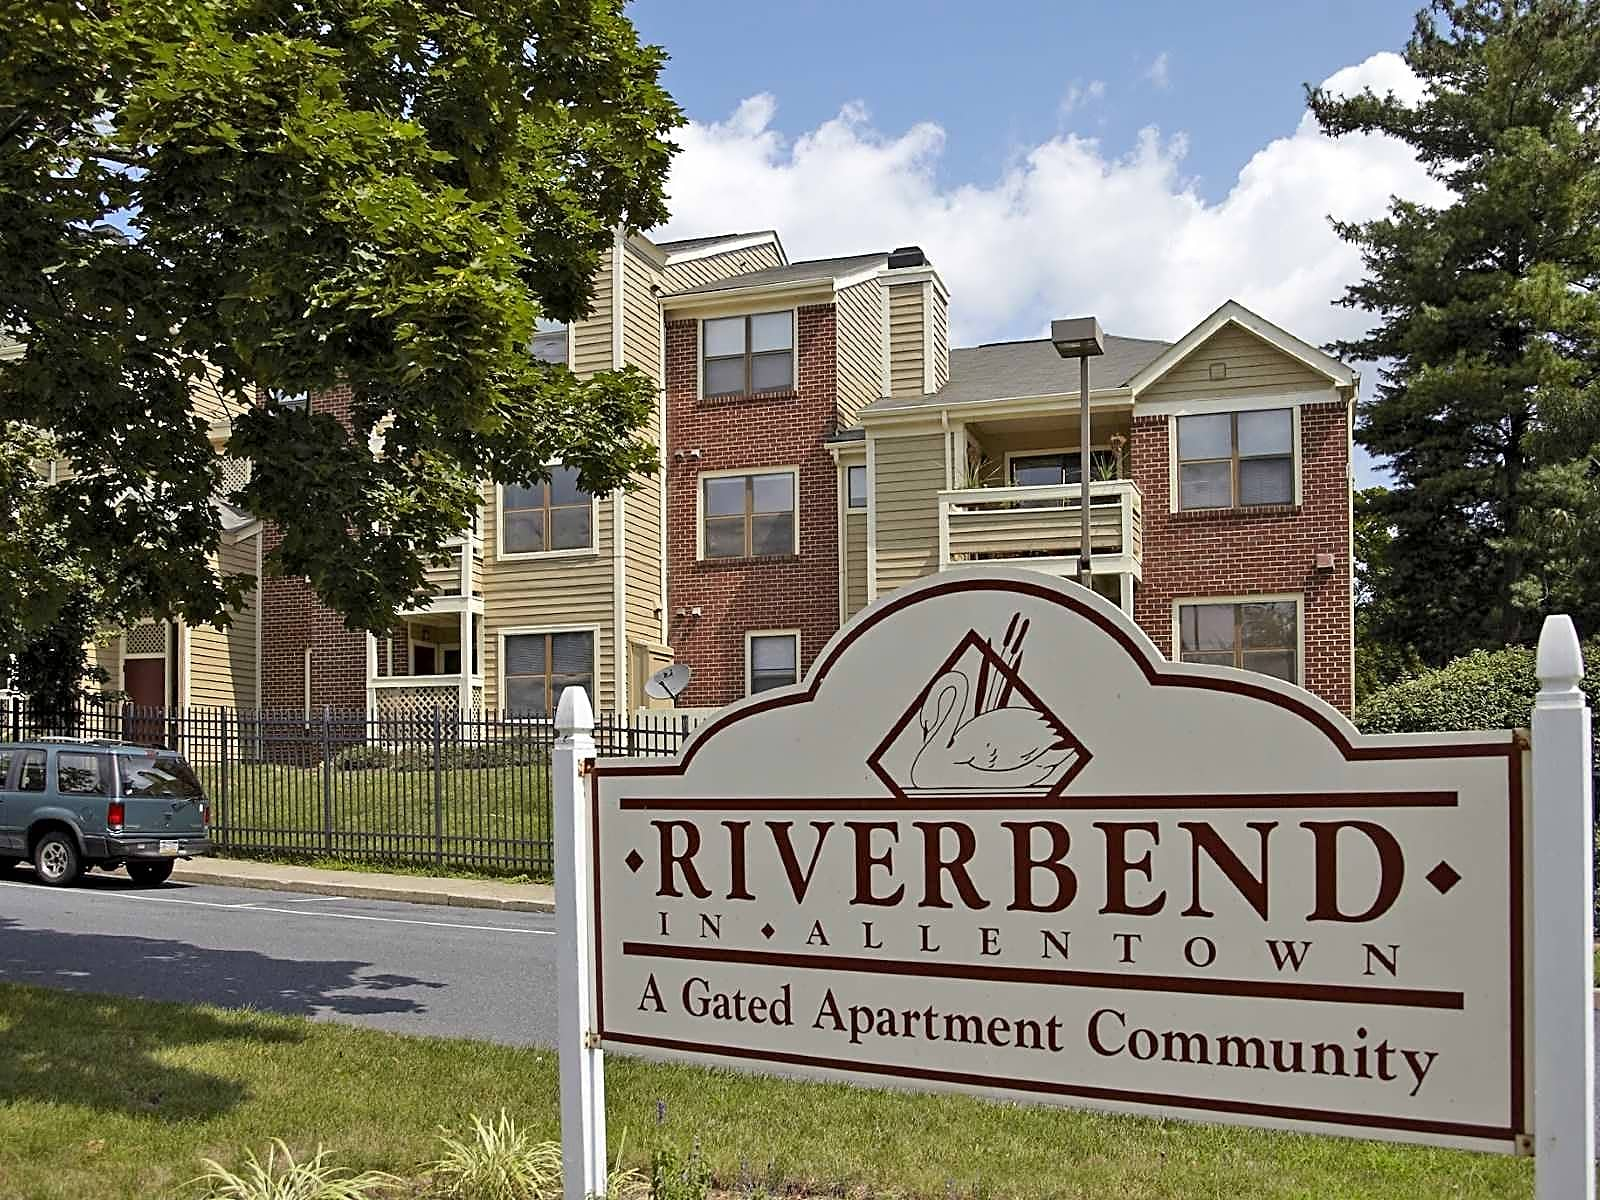 Apartments Near Lehigh Riverbend In Allentown for Lehigh University Students in Bethlehem, PA